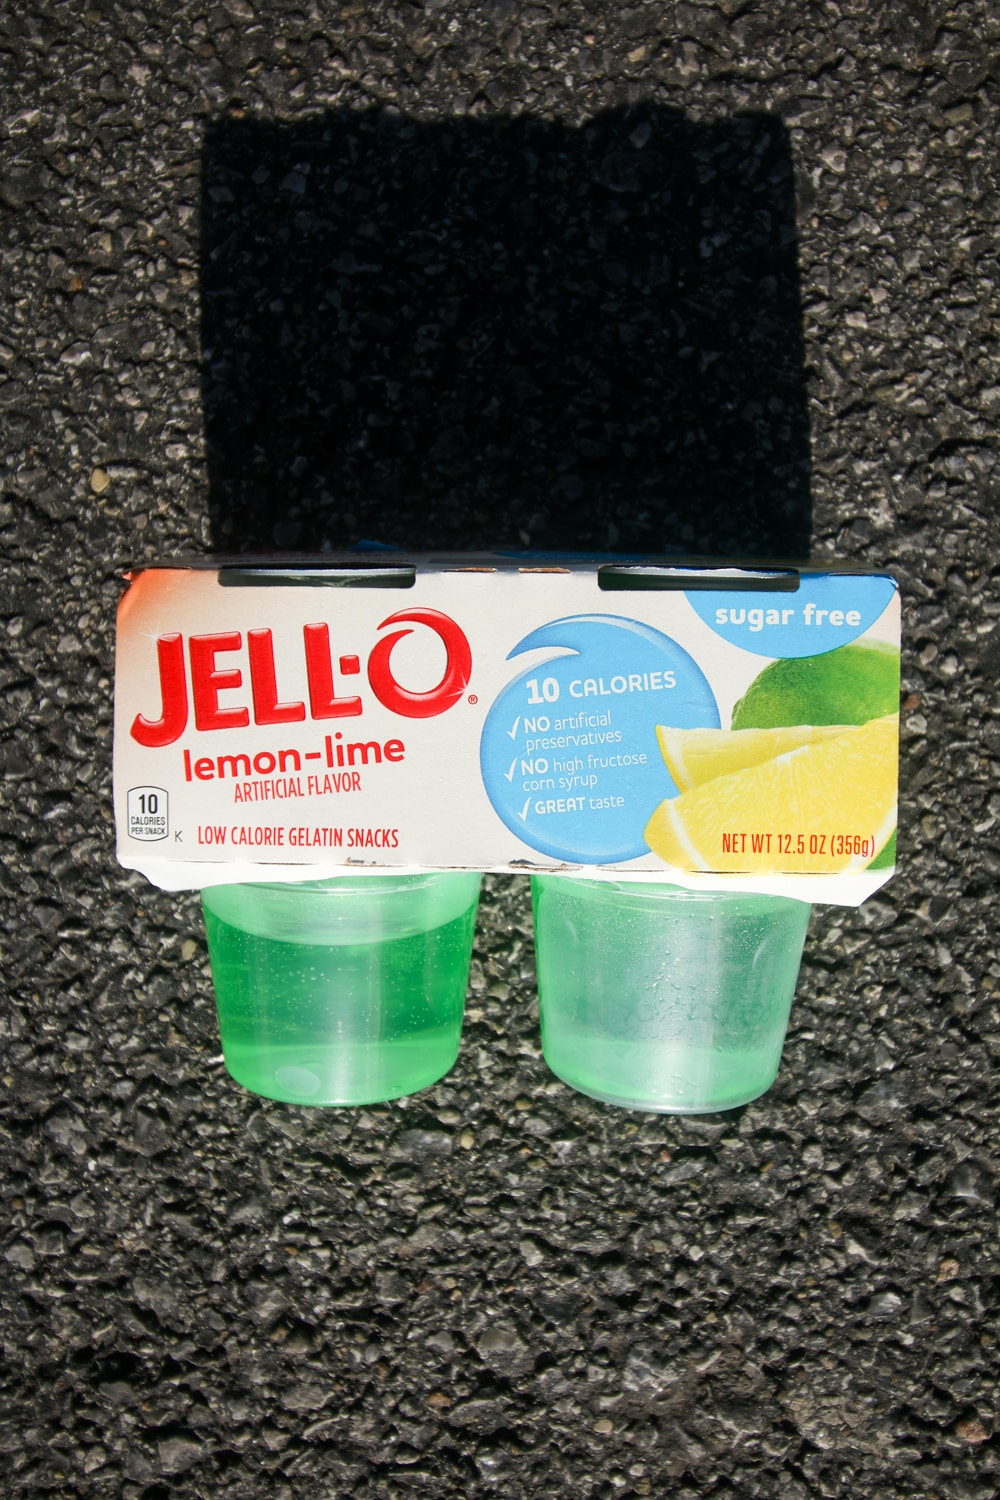 A package of 4 lemon lime sugar free Jello's.